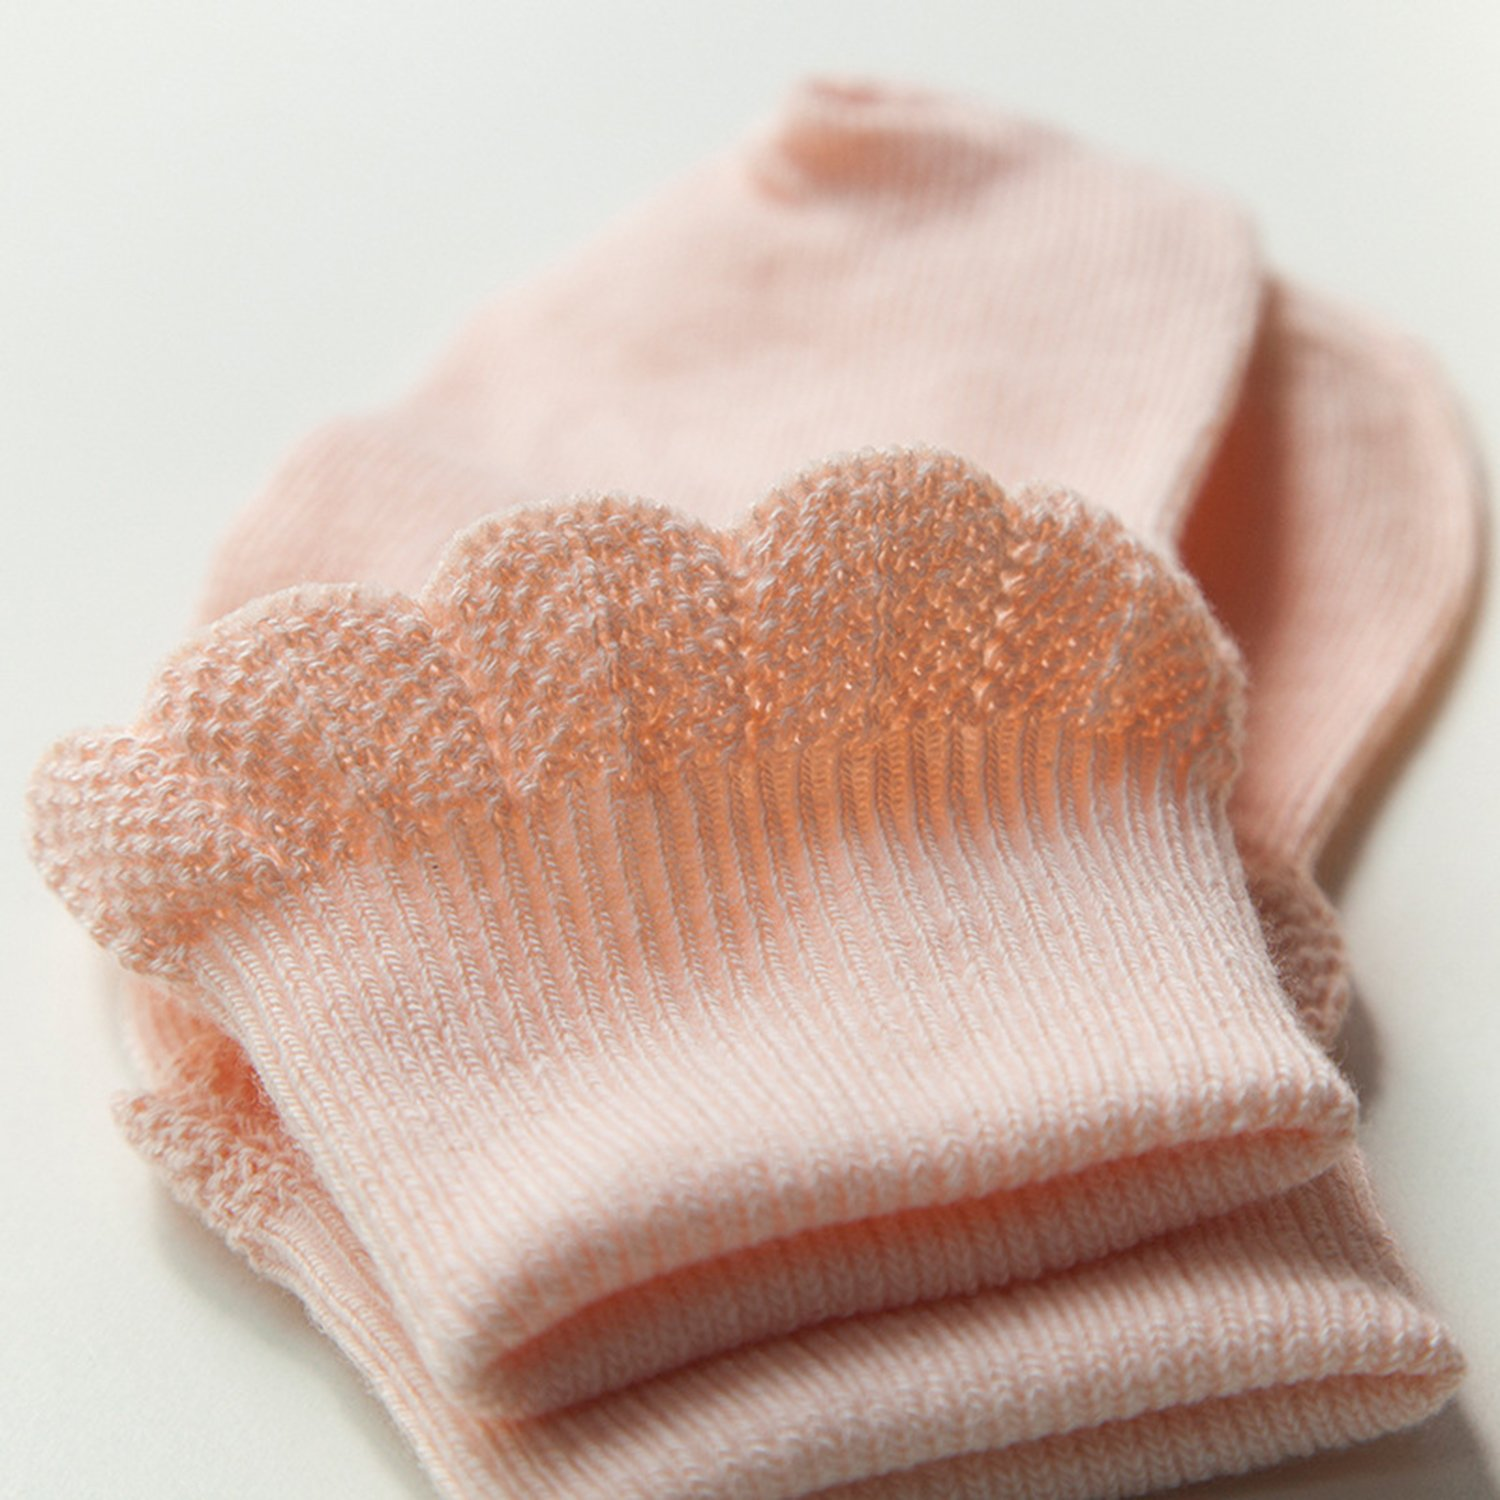 XPX Fashion Cotton Infant Baby Gilrs Princess Lace Socks Toddler 5 Pack